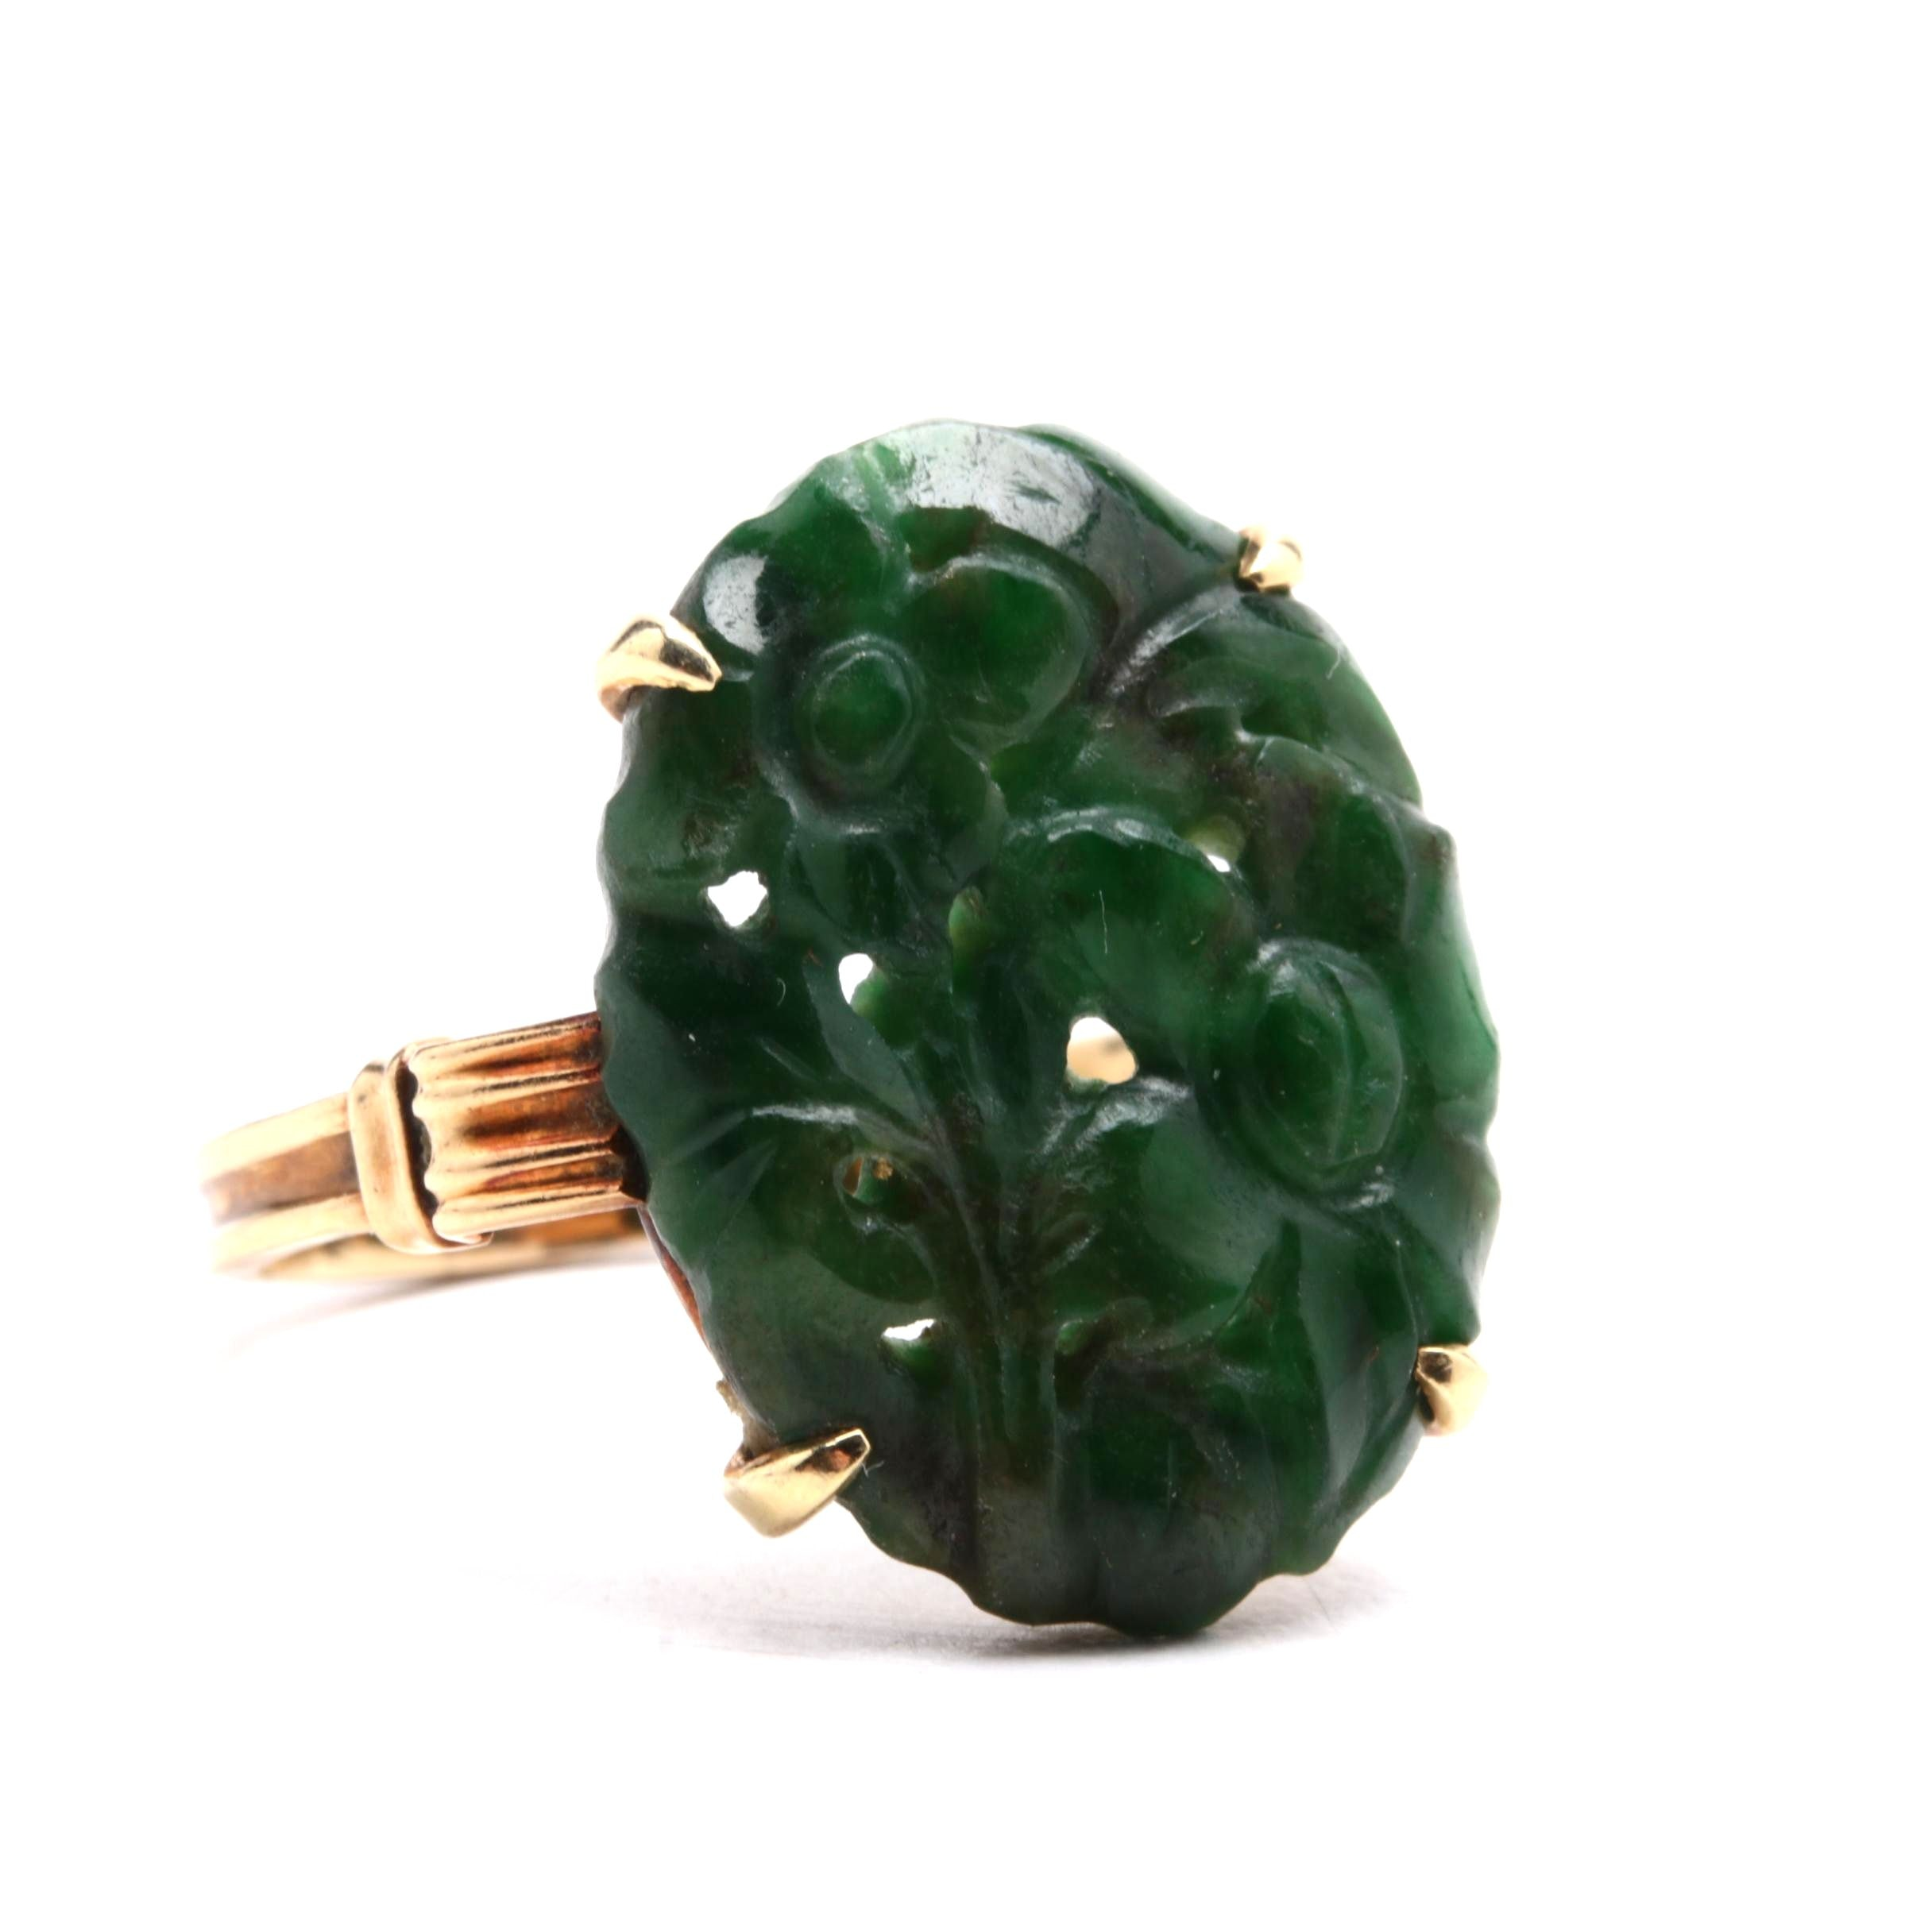 Vintage Carved Jadeite Ring in 14K Yellow Gold Setting